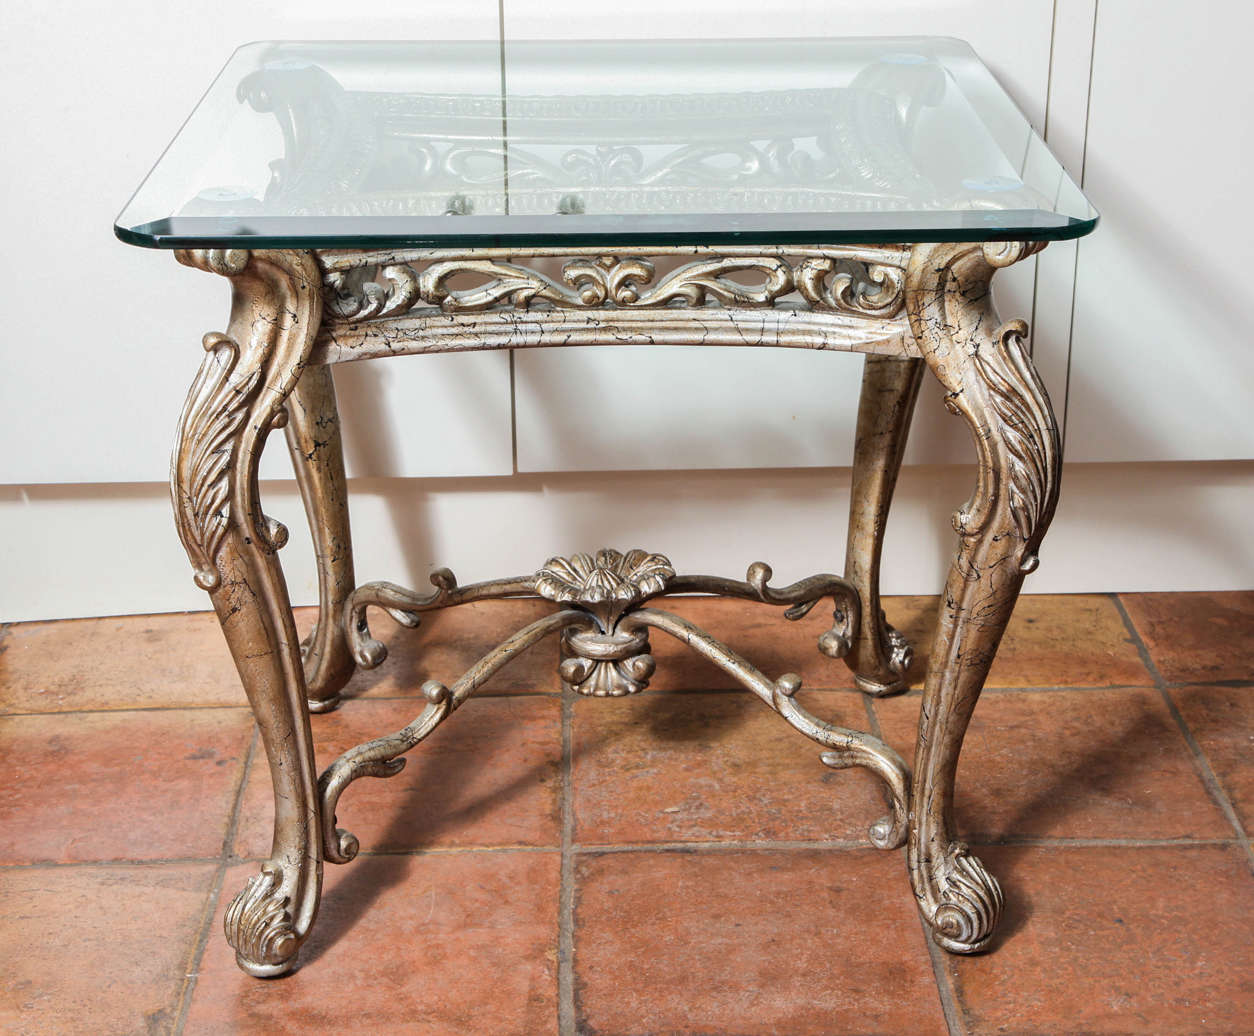 Antique End Tables Images: Antique Italian Rococo Gilt Silver Iron Square Side Table